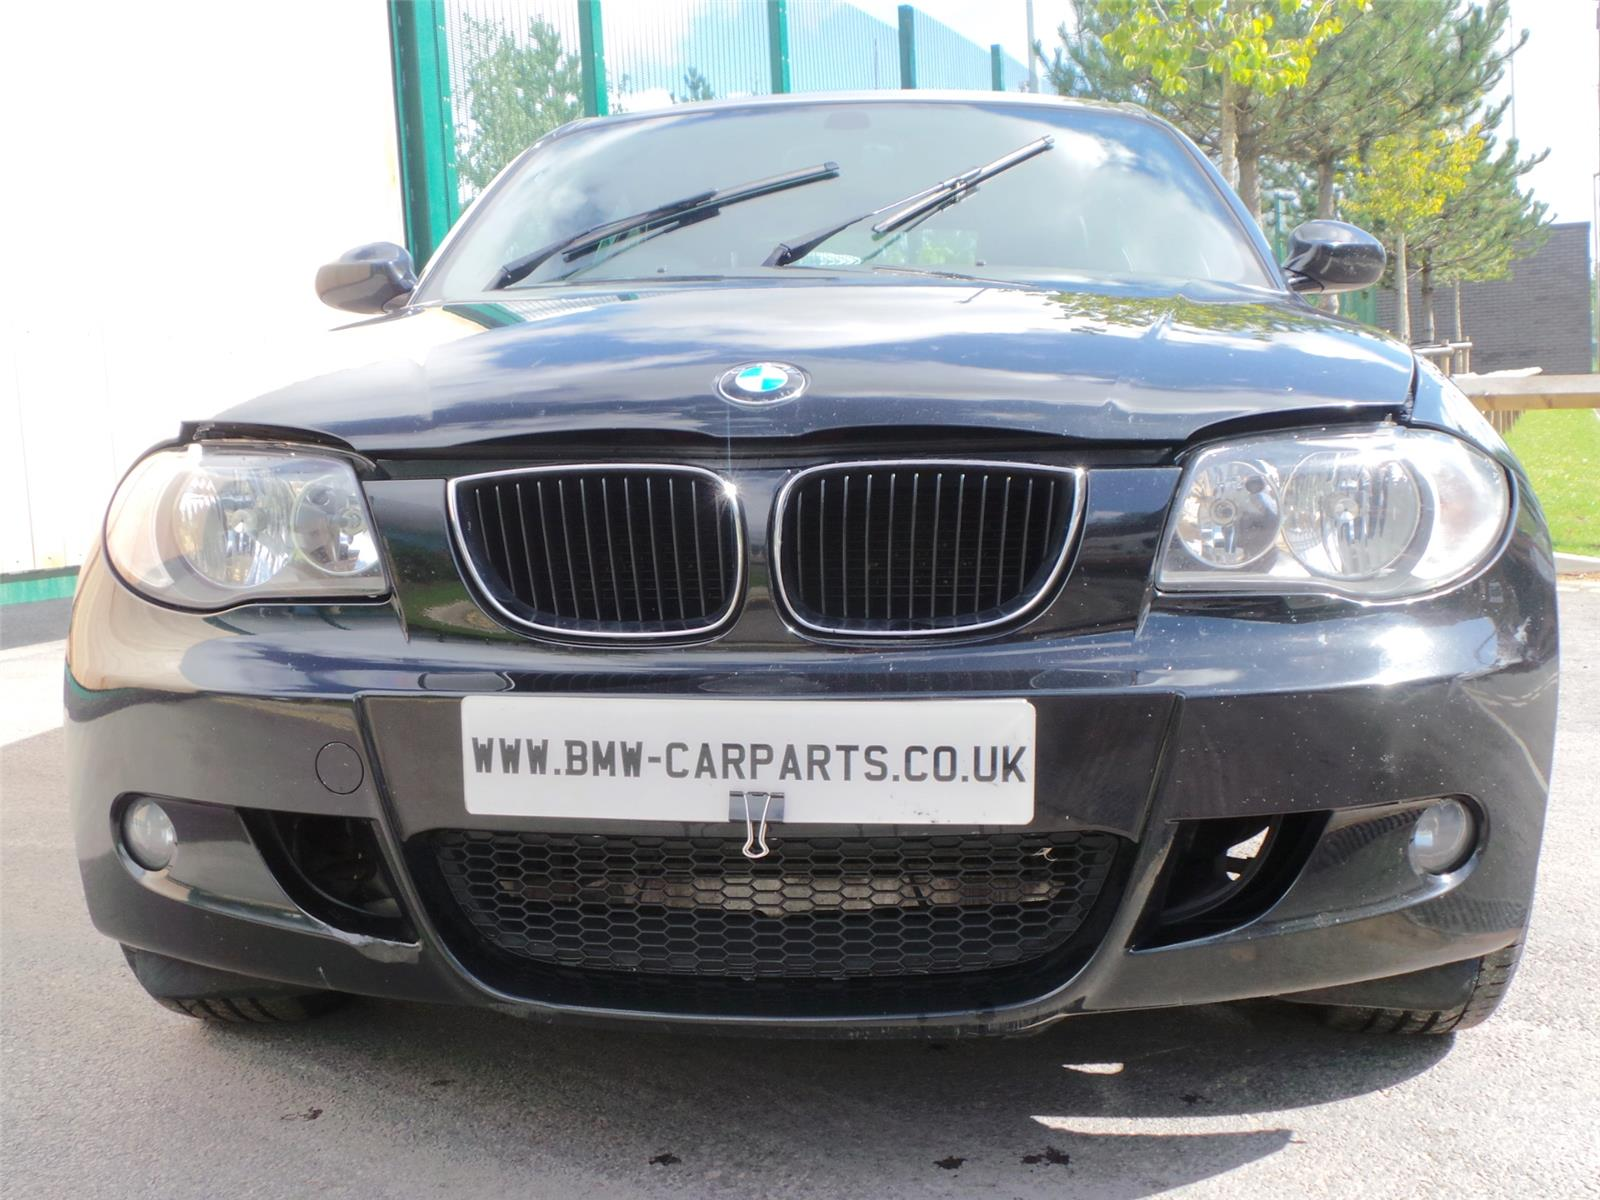 2007 bmw 1 series 118d m sport 5 door hatchback diesel. Black Bedroom Furniture Sets. Home Design Ideas